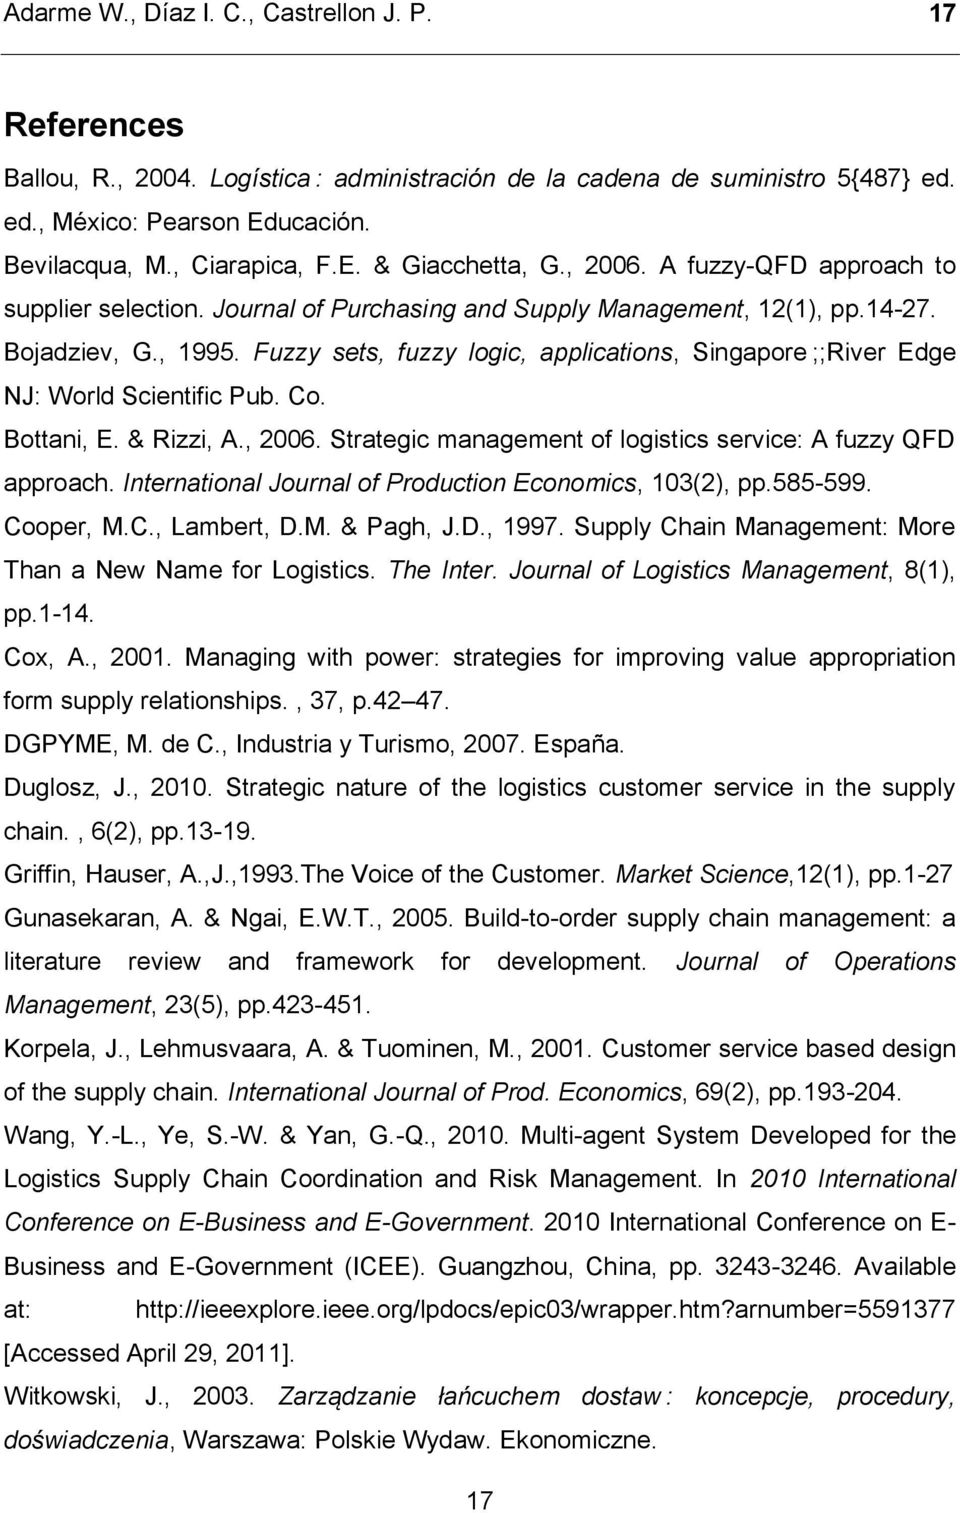 Fuzzy sets, fuzzy logic, applications, Singapore ;;River dge NJ: World Scientific Pub. Co. Bottani, E. & Rizzi, A., 2006. Strategic management of logistics service: A fuzzy QFD approach.